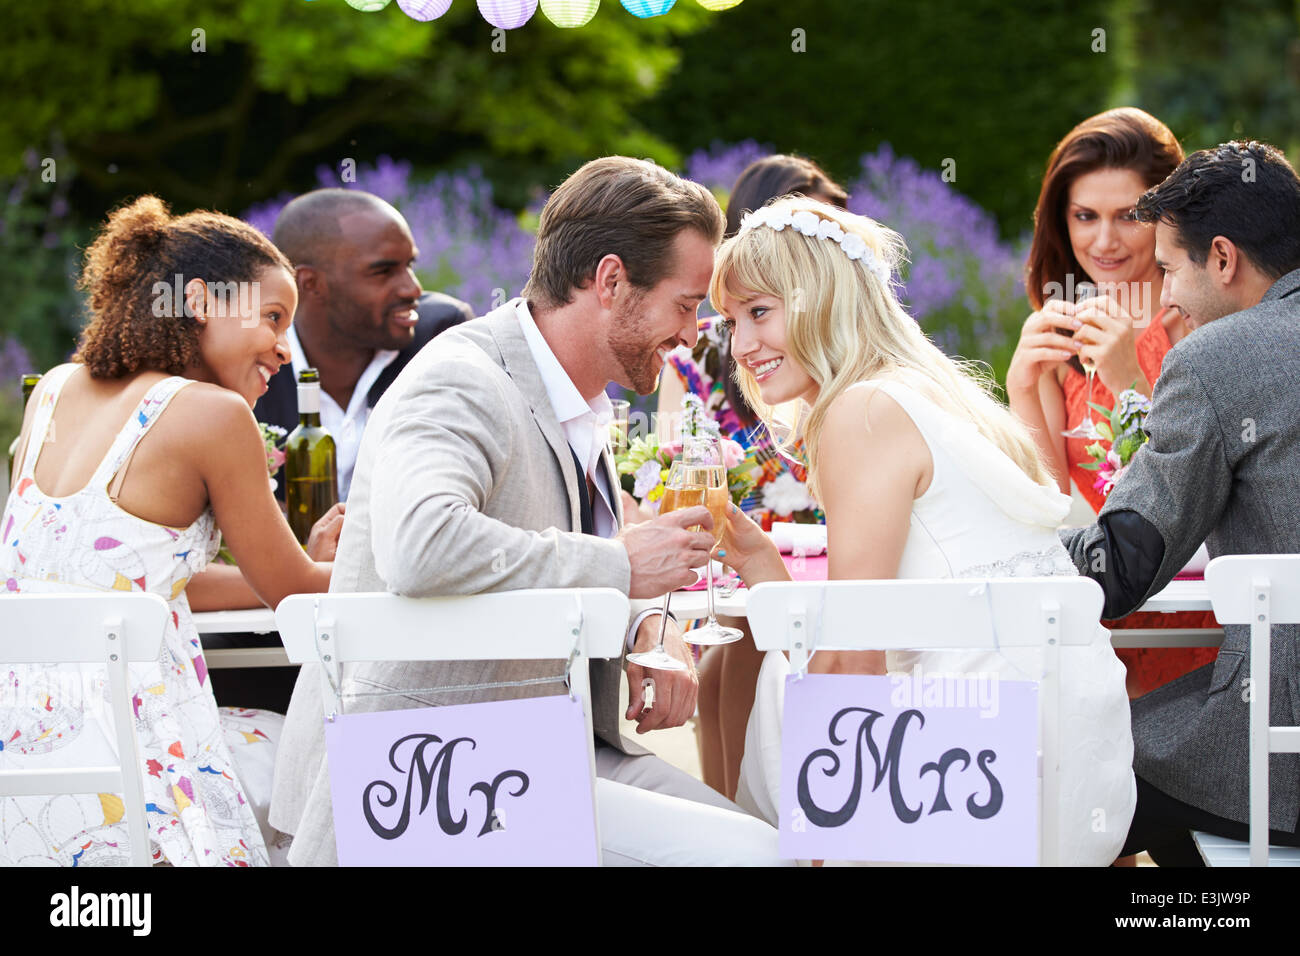 Couple Enjoying Meal At Wedding Reception Photo Stock